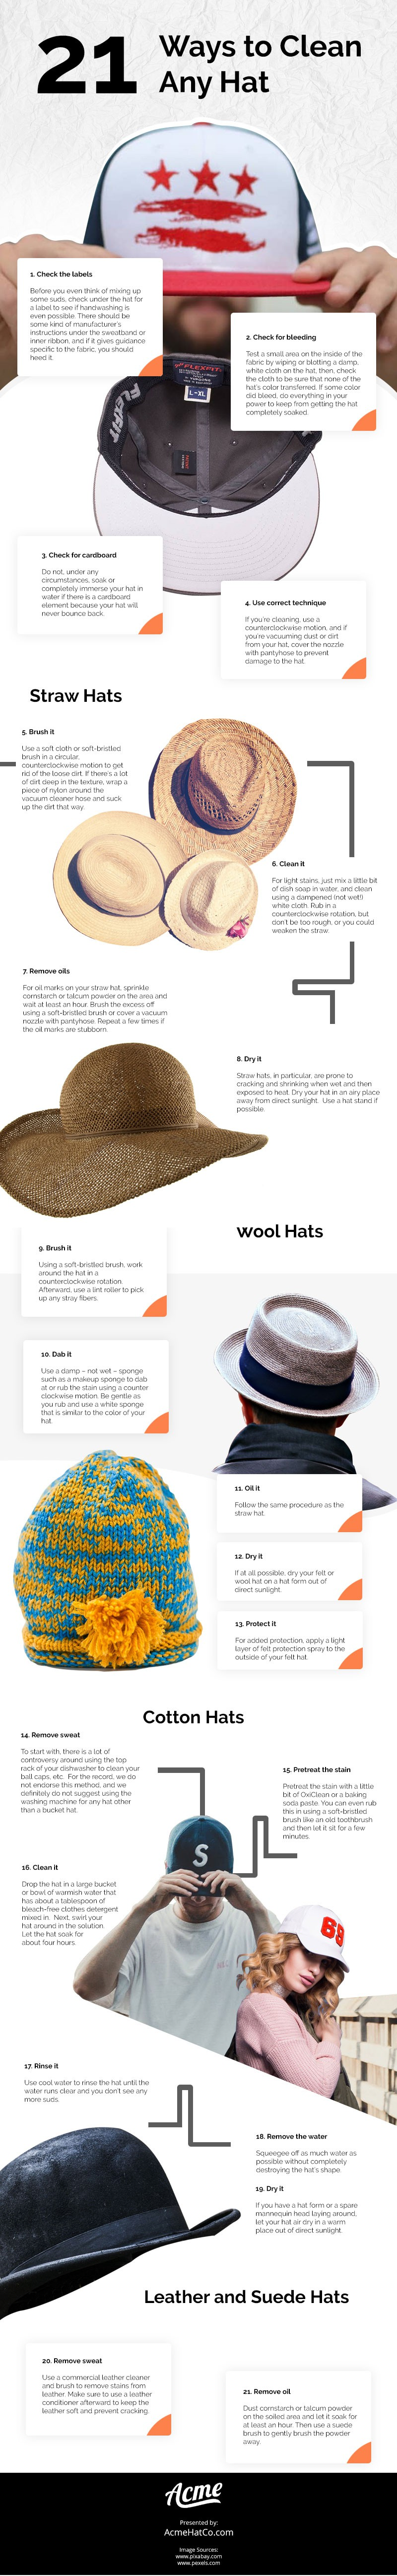 21 Ways to Clean Any Hat [infographic]